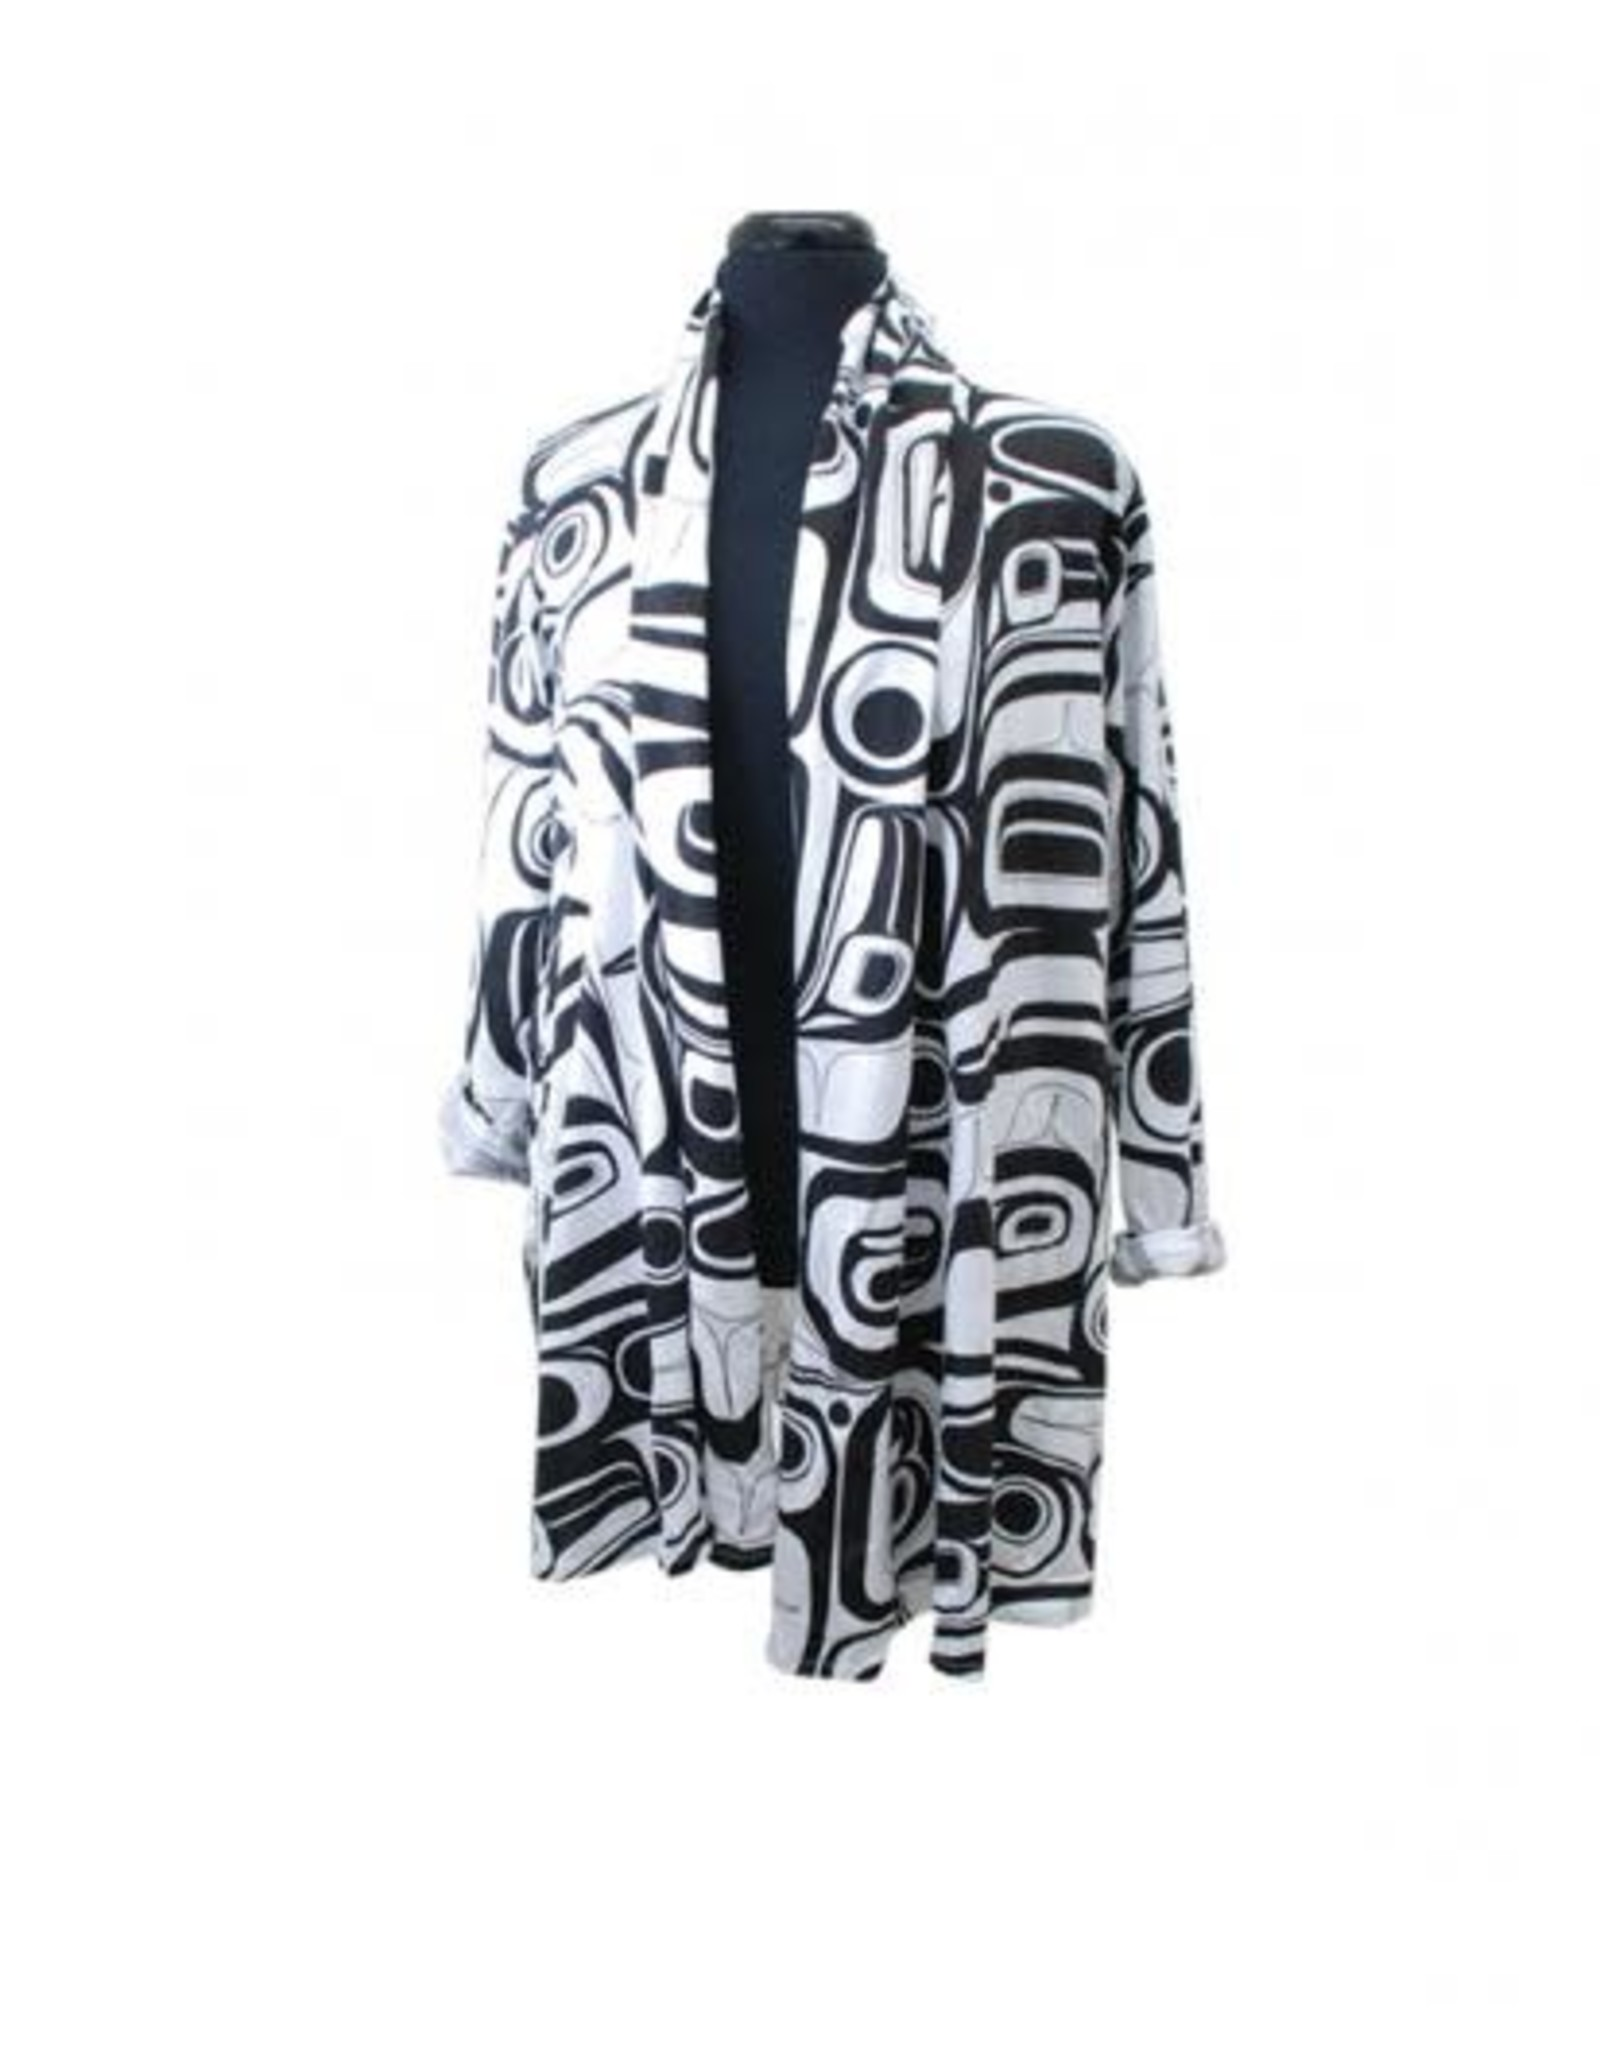 All Over Print Swing Jacket Raven by Kelly Robinson